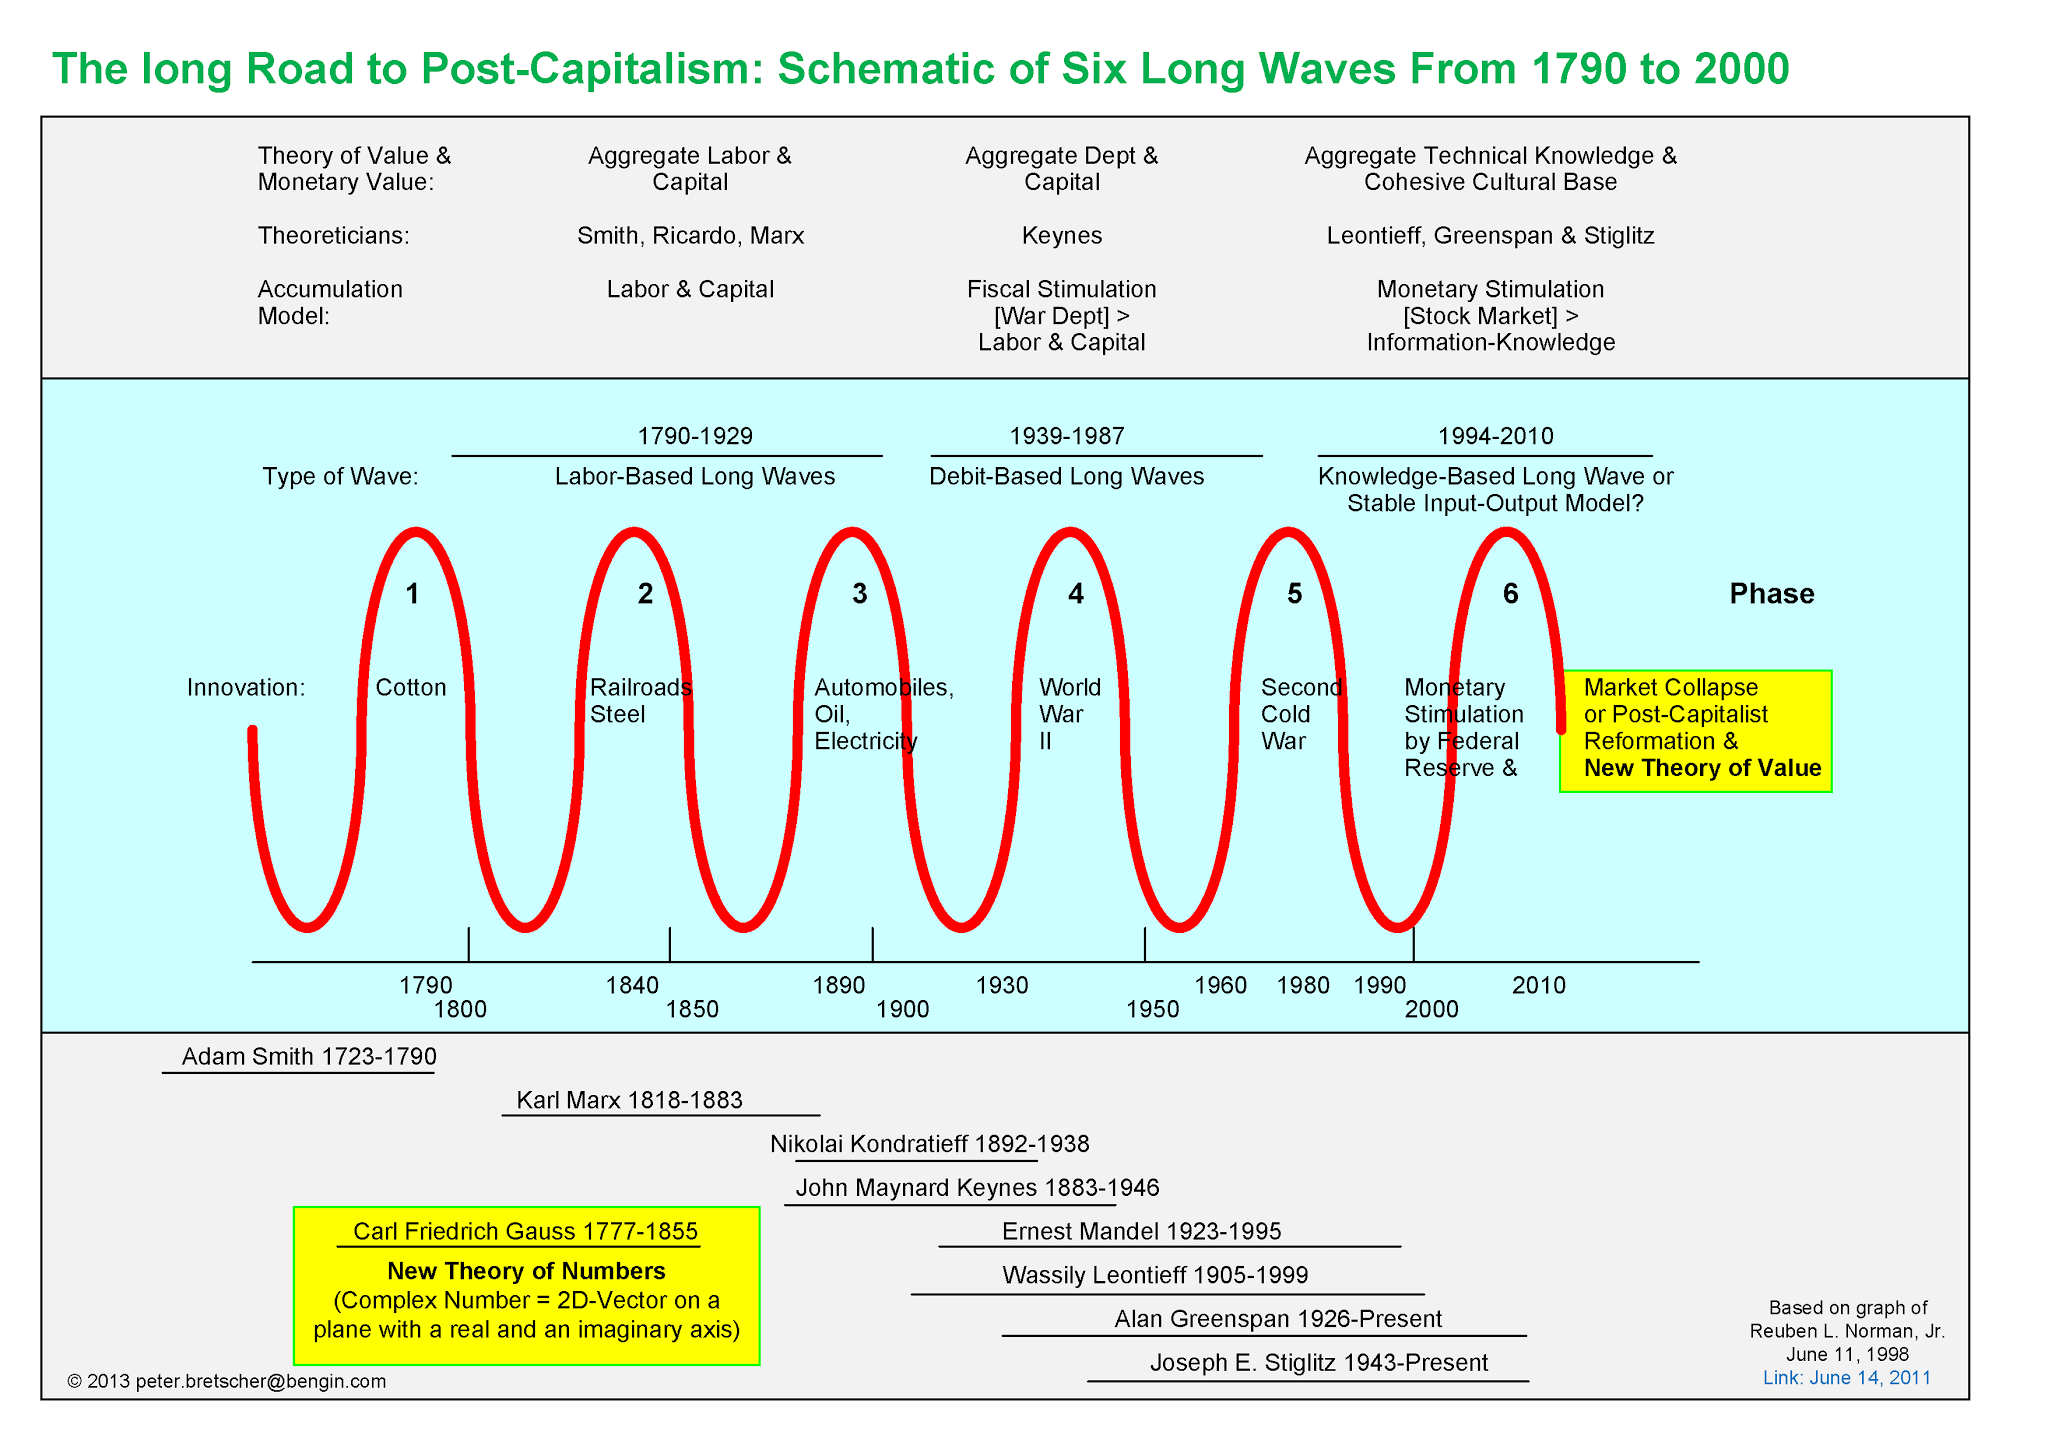 The Long Road to Post-Capitalism